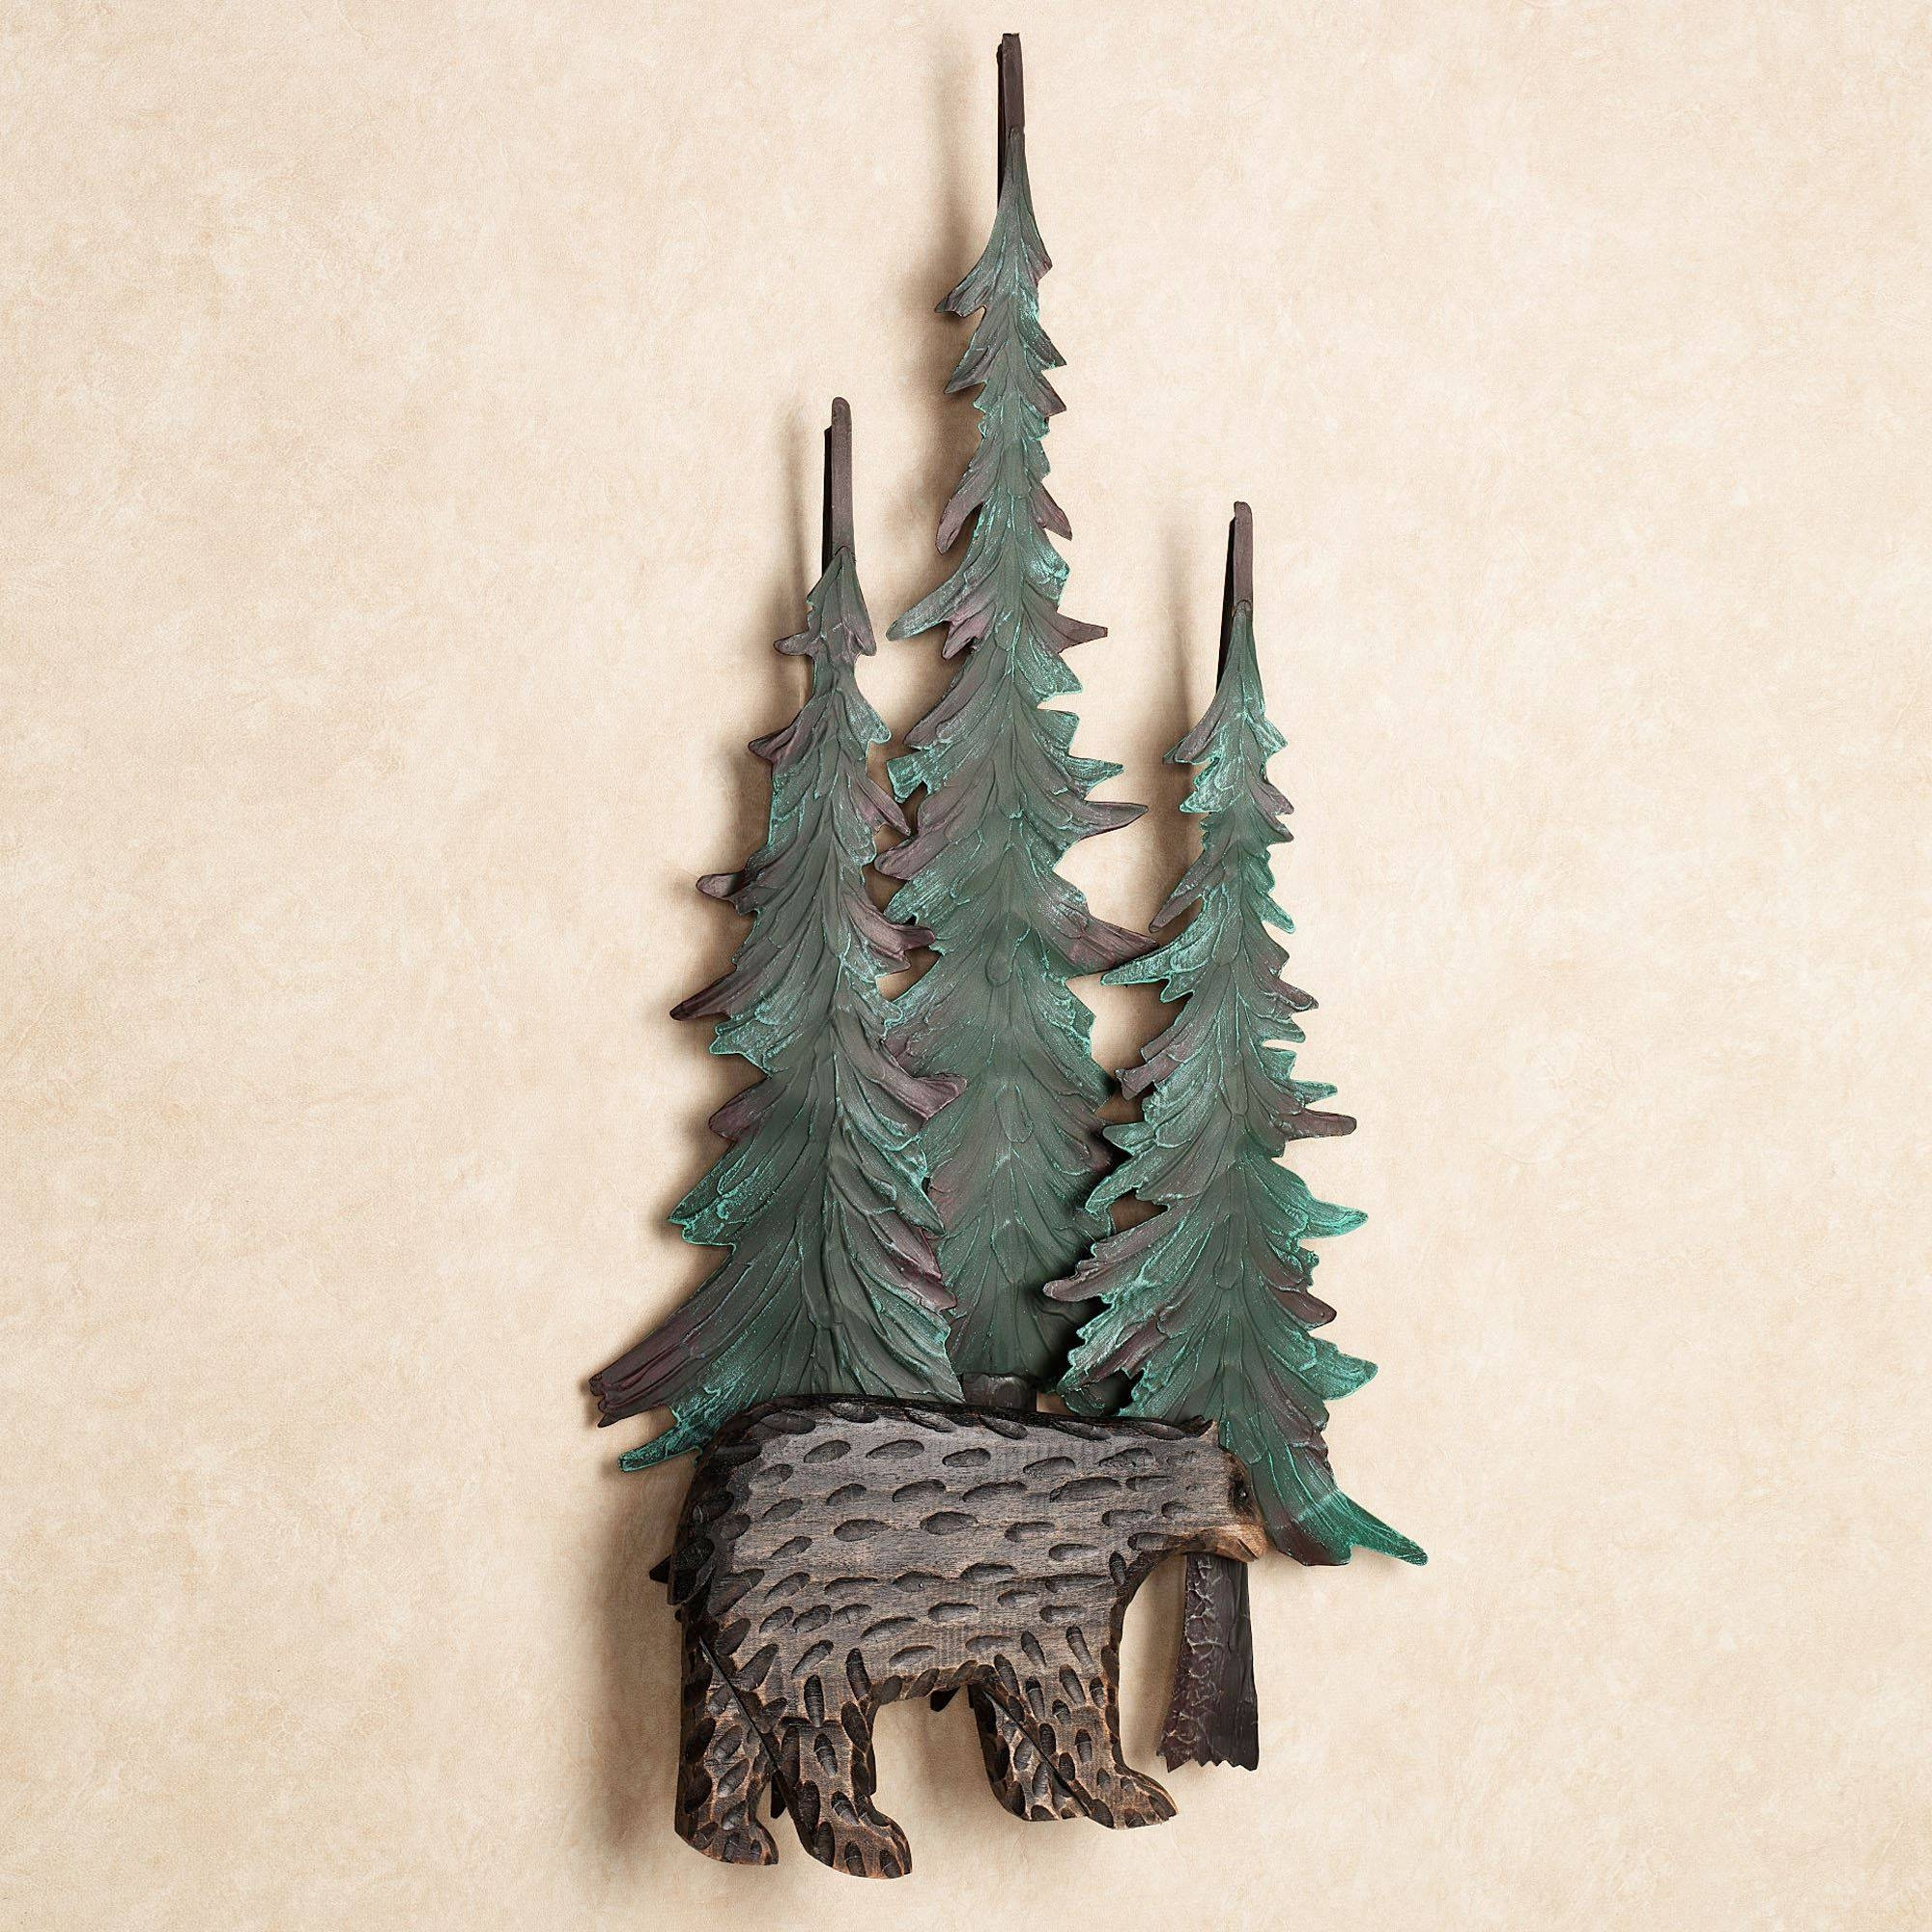 Black Bear In Pines Wall Art Intended For Most Popular Pine Tree Wall Art (View 4 of 30)